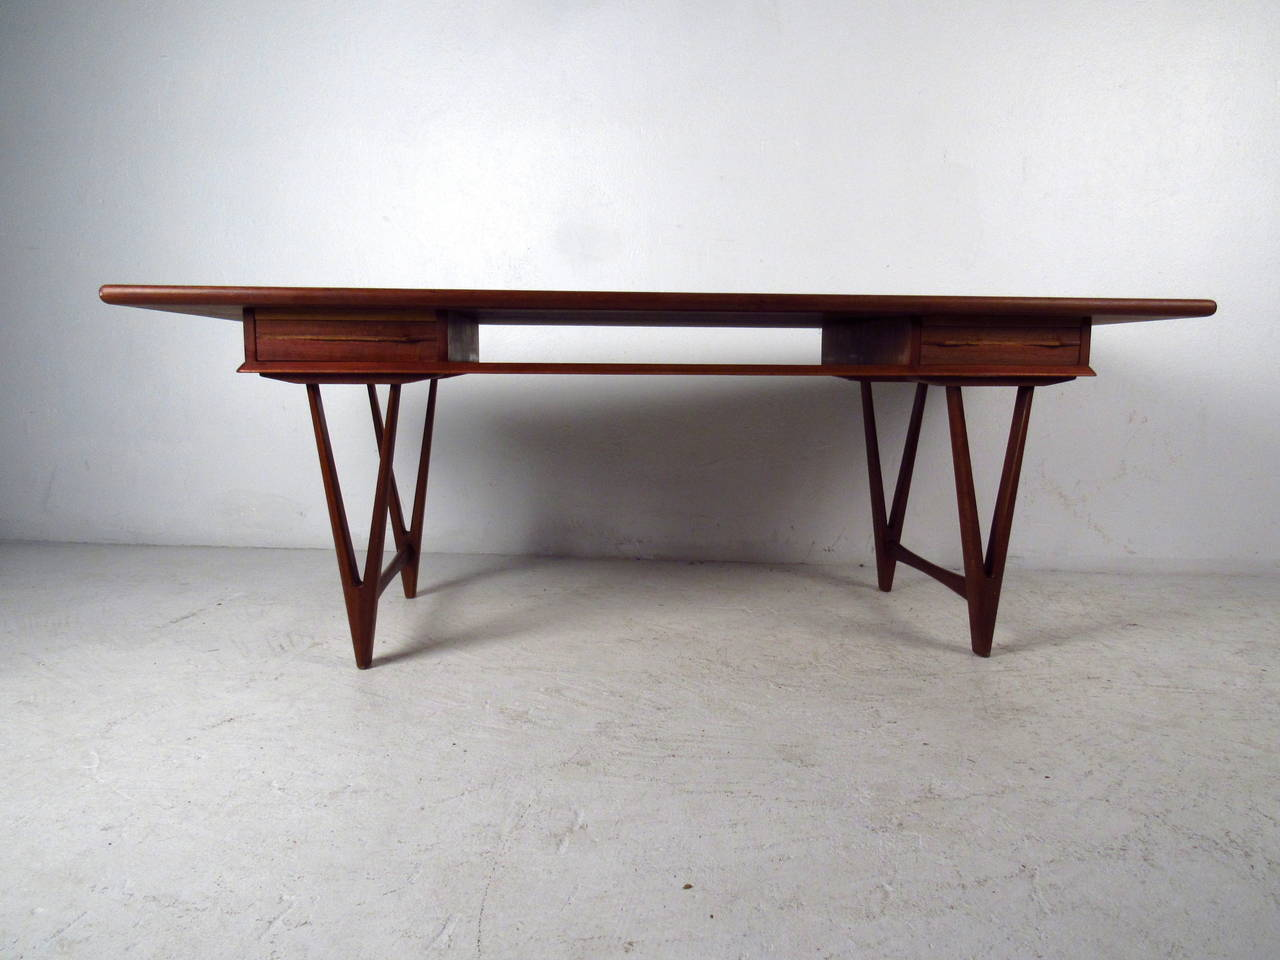 Danish modern teak coffee table with two drawers by e w bach for sale at 1stdibs Modern teak coffee table